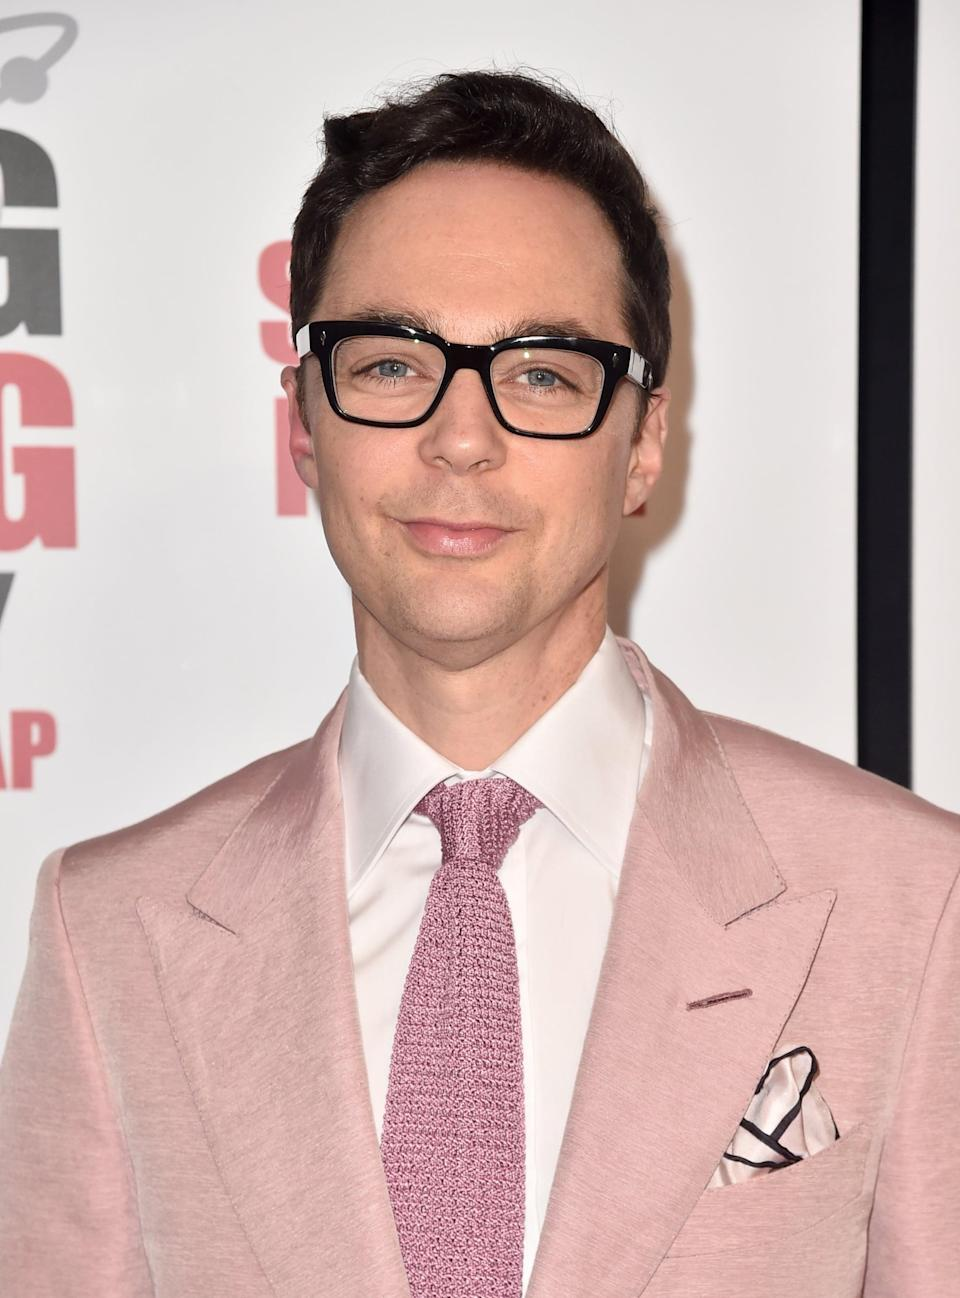 """<p>Jim Parsons, who plays the scene-stealing physicist Sheldon Cooper, will continue as executive producer and narrator of <strong>TBBT</strong> prequel, <strong>Young Sheldon</strong>, which CBS has <a href=""""http://variety.com/2019/tv/news/young-sheldon-renewed-season-3-4-cbs-1203146124/"""" rel=""""nofollow noopener"""" target=""""_blank"""" data-ylk=""""slk:already renewed for a third and fourth season"""" class=""""link rapid-noclick-resp"""">already renewed for a third and fourth season</a>, with the third season set to premiere this Fall. </p> <p>The actor also <a href=""""http://deadline.com/2019/04/jim-parsons-zachary-quinto-boys-in-the-band-netflix-joe-mantello-ryan-murphy-1202597672/"""" rel=""""nofollow noopener"""" target=""""_blank"""" data-ylk=""""slk:plans on reprising a part he played on Broadway"""" class=""""link rapid-noclick-resp"""">plans on reprising a part he played on Broadway</a> in 2018, with the Netflix adaptation of the drama <strong>The Boys in the Band</strong> - to be executive produced by Ryan Murphy - slated to start filming in July. As well, Parsons <a href=""""http://deadline.com/2018/12/spoiler-alert-the-hero-dies-movie-michael-showalter-jim-parsons-focus-features-michael-ausiello-1202514896/"""" rel=""""nofollow noopener"""" target=""""_blank"""" data-ylk=""""slk:will star in Spoiler Alert: The Hero Dies"""" class=""""link rapid-noclick-resp"""">will star in <strong>Spoiler Alert: The Hero Dies</strong></a>, a movie adaptation of TV critic Michael Ausiello's memoir about the cancer diagnosis of his longtime partner, Kit.<br></p>"""